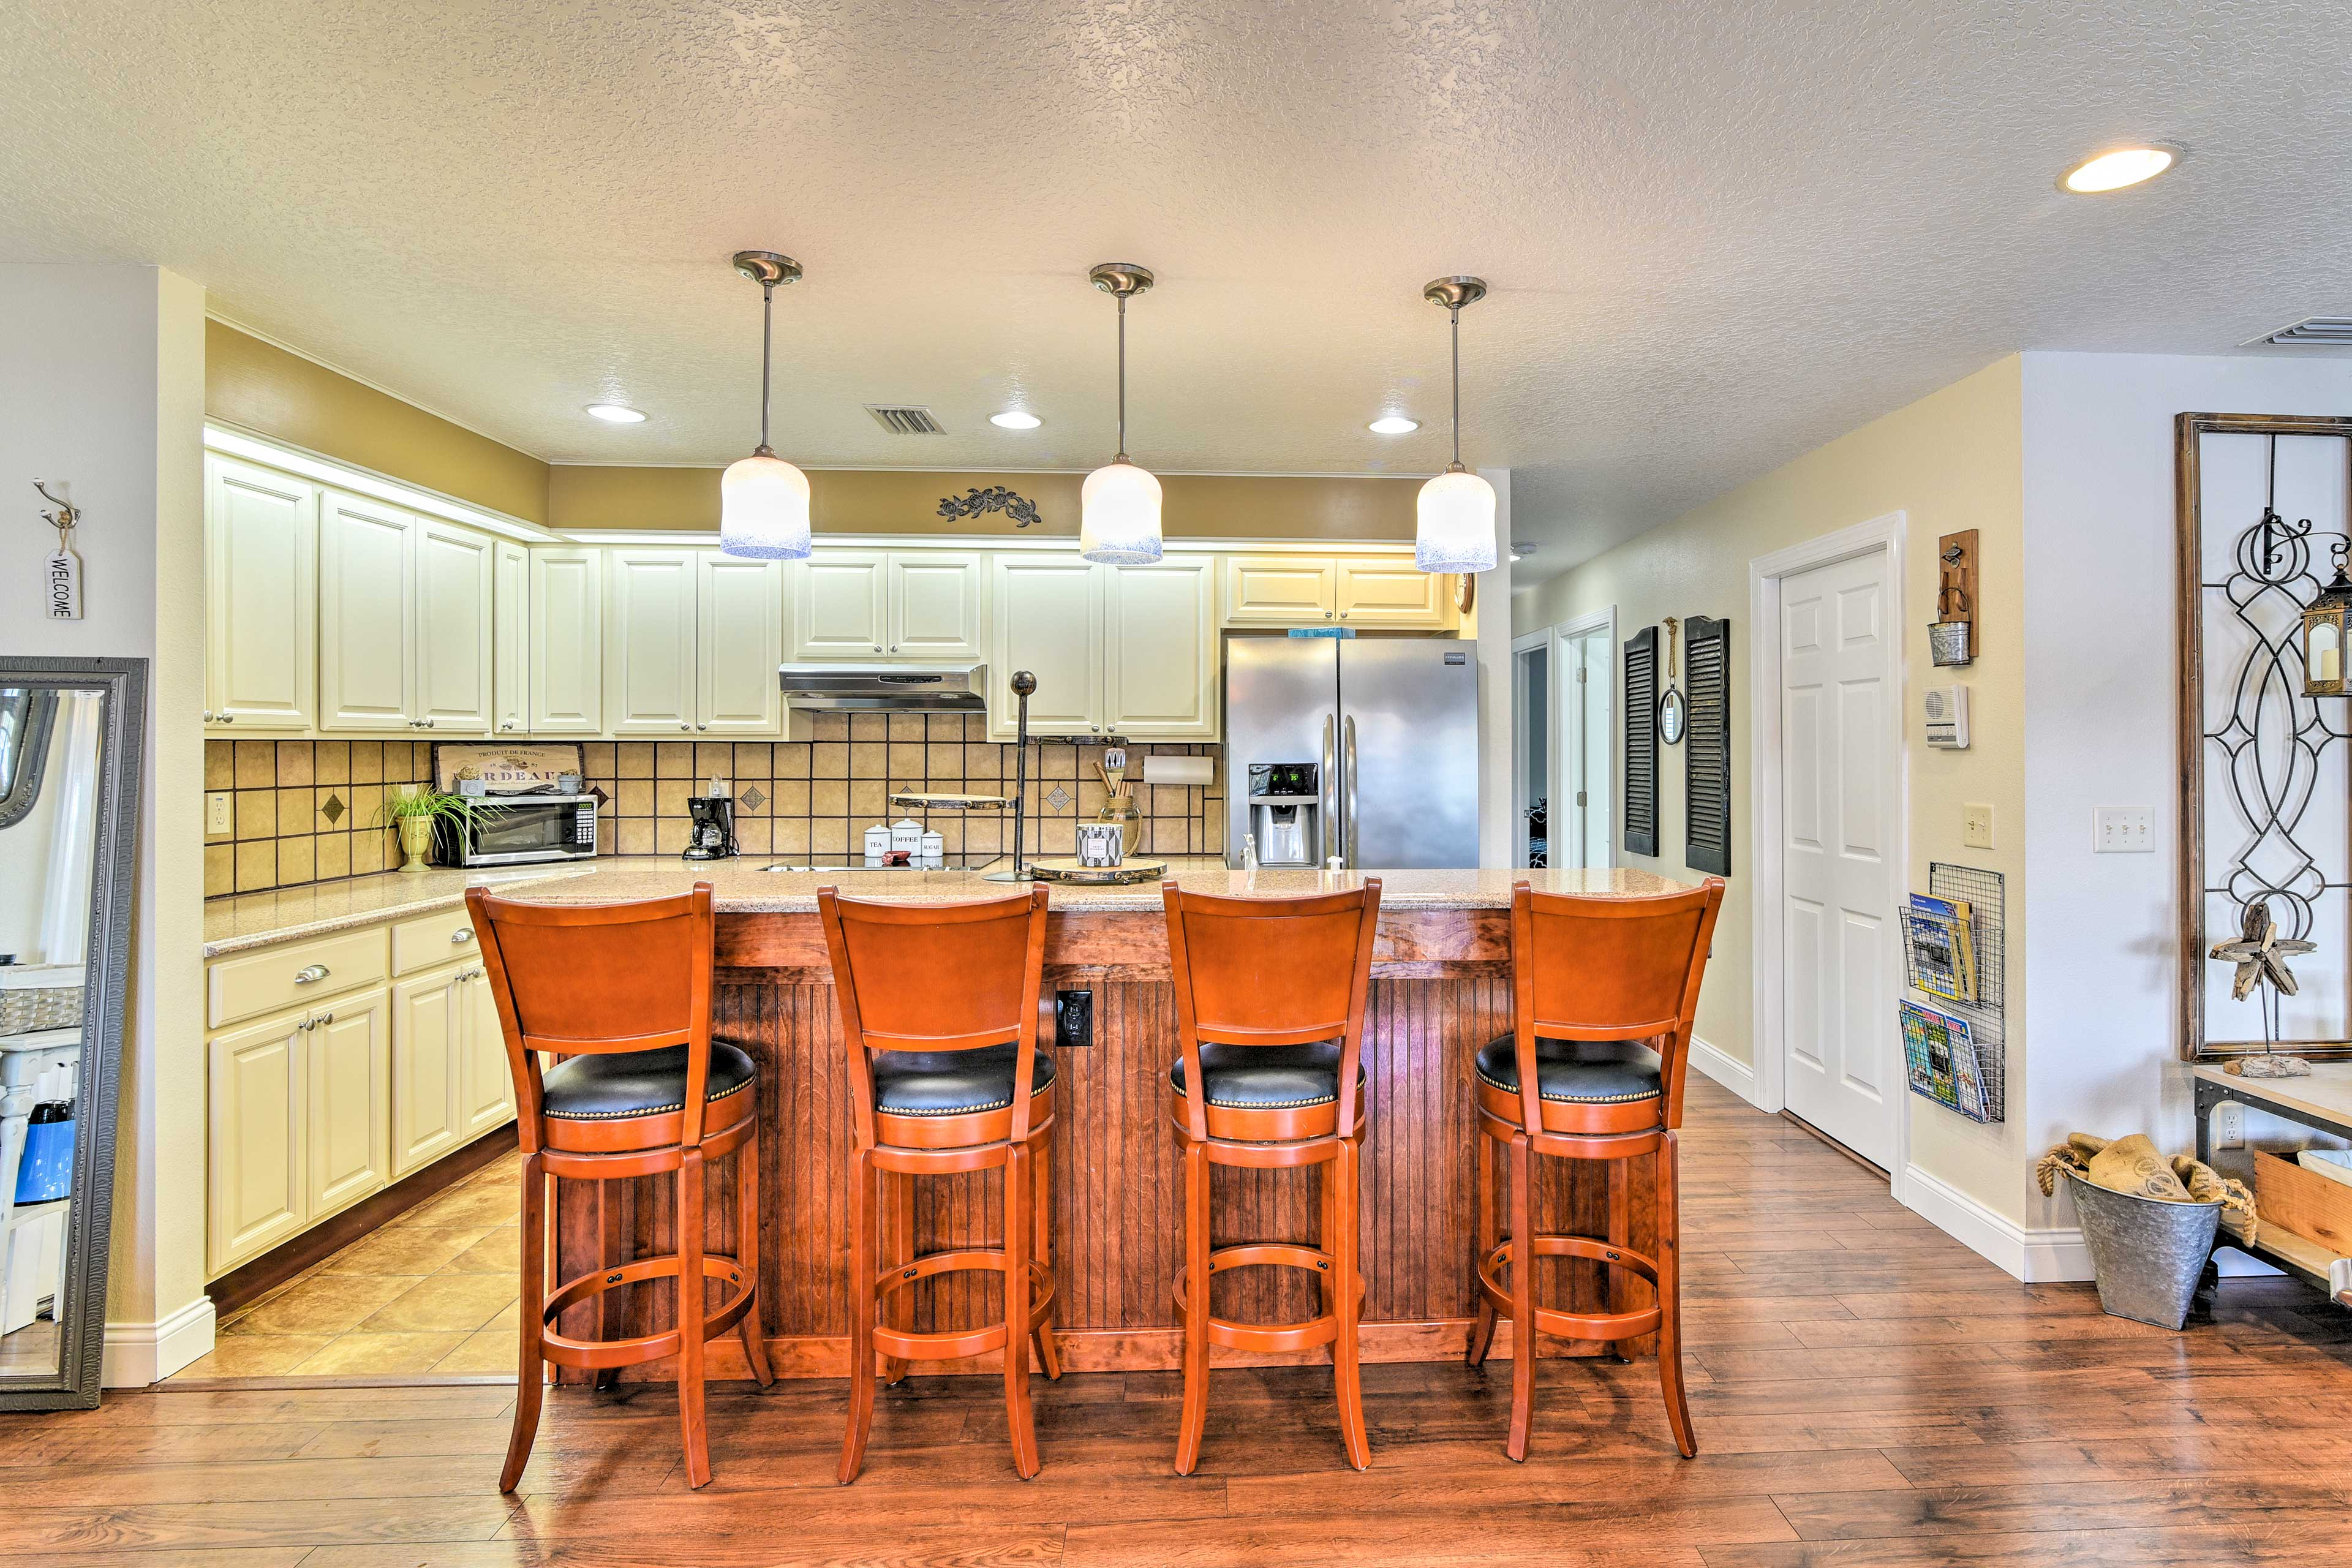 Channel your inner Iron Chef in the fully equipped kitchen!